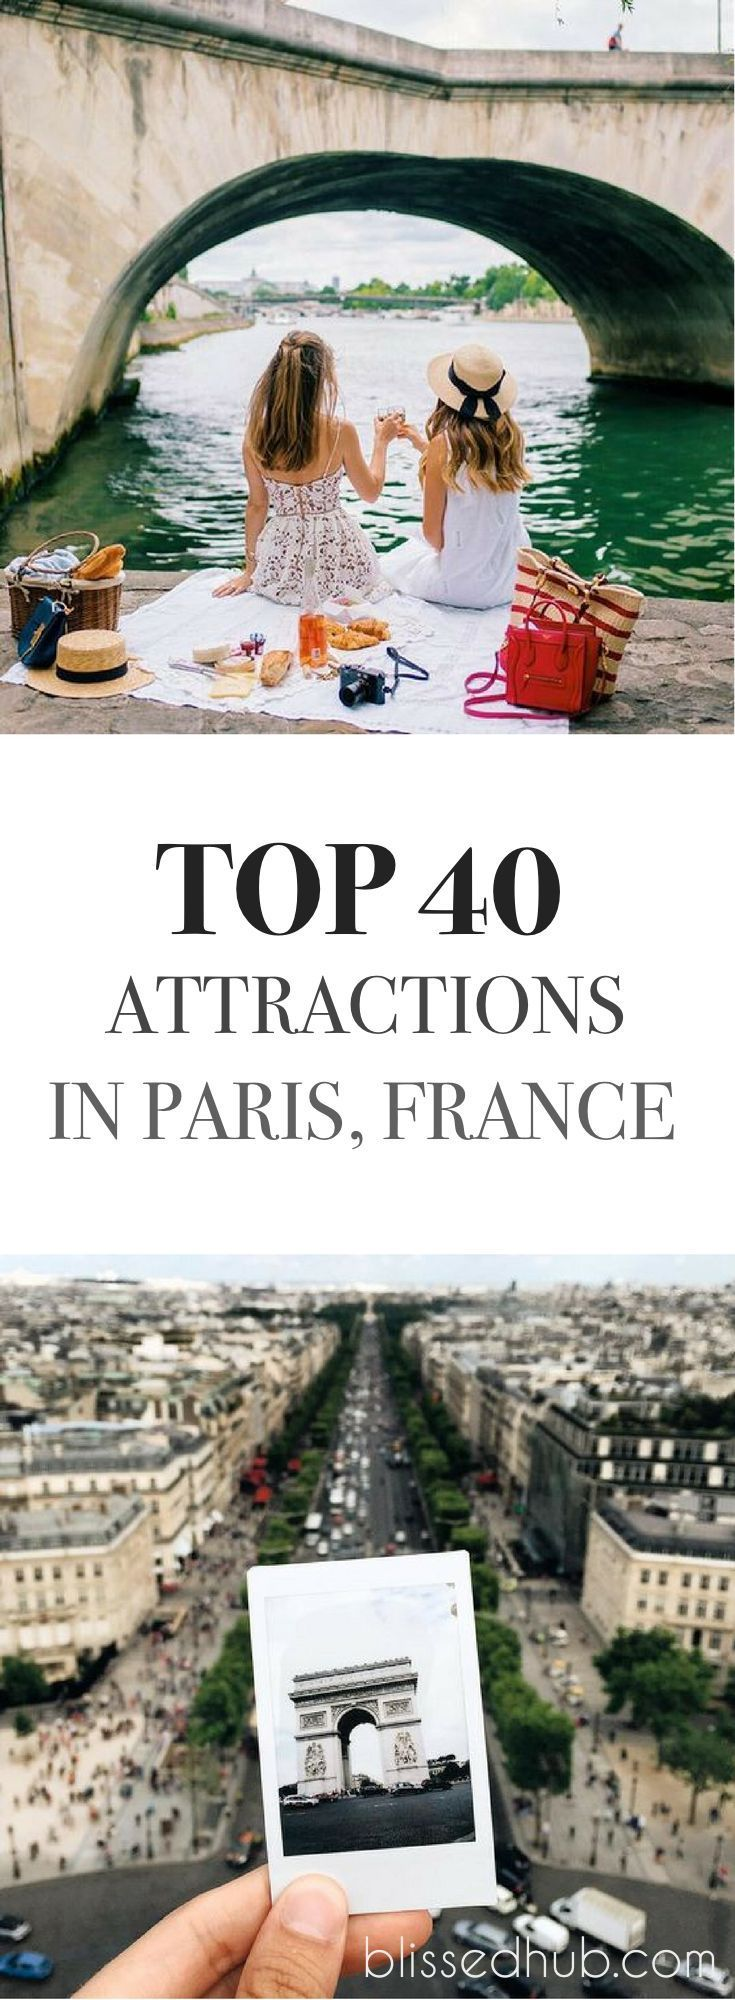 ღღ TOP 40 ATTRACTIONS IN PARIS FRANCE | most beautiful places to go - places to go - france holiday - paris photos - places to go list